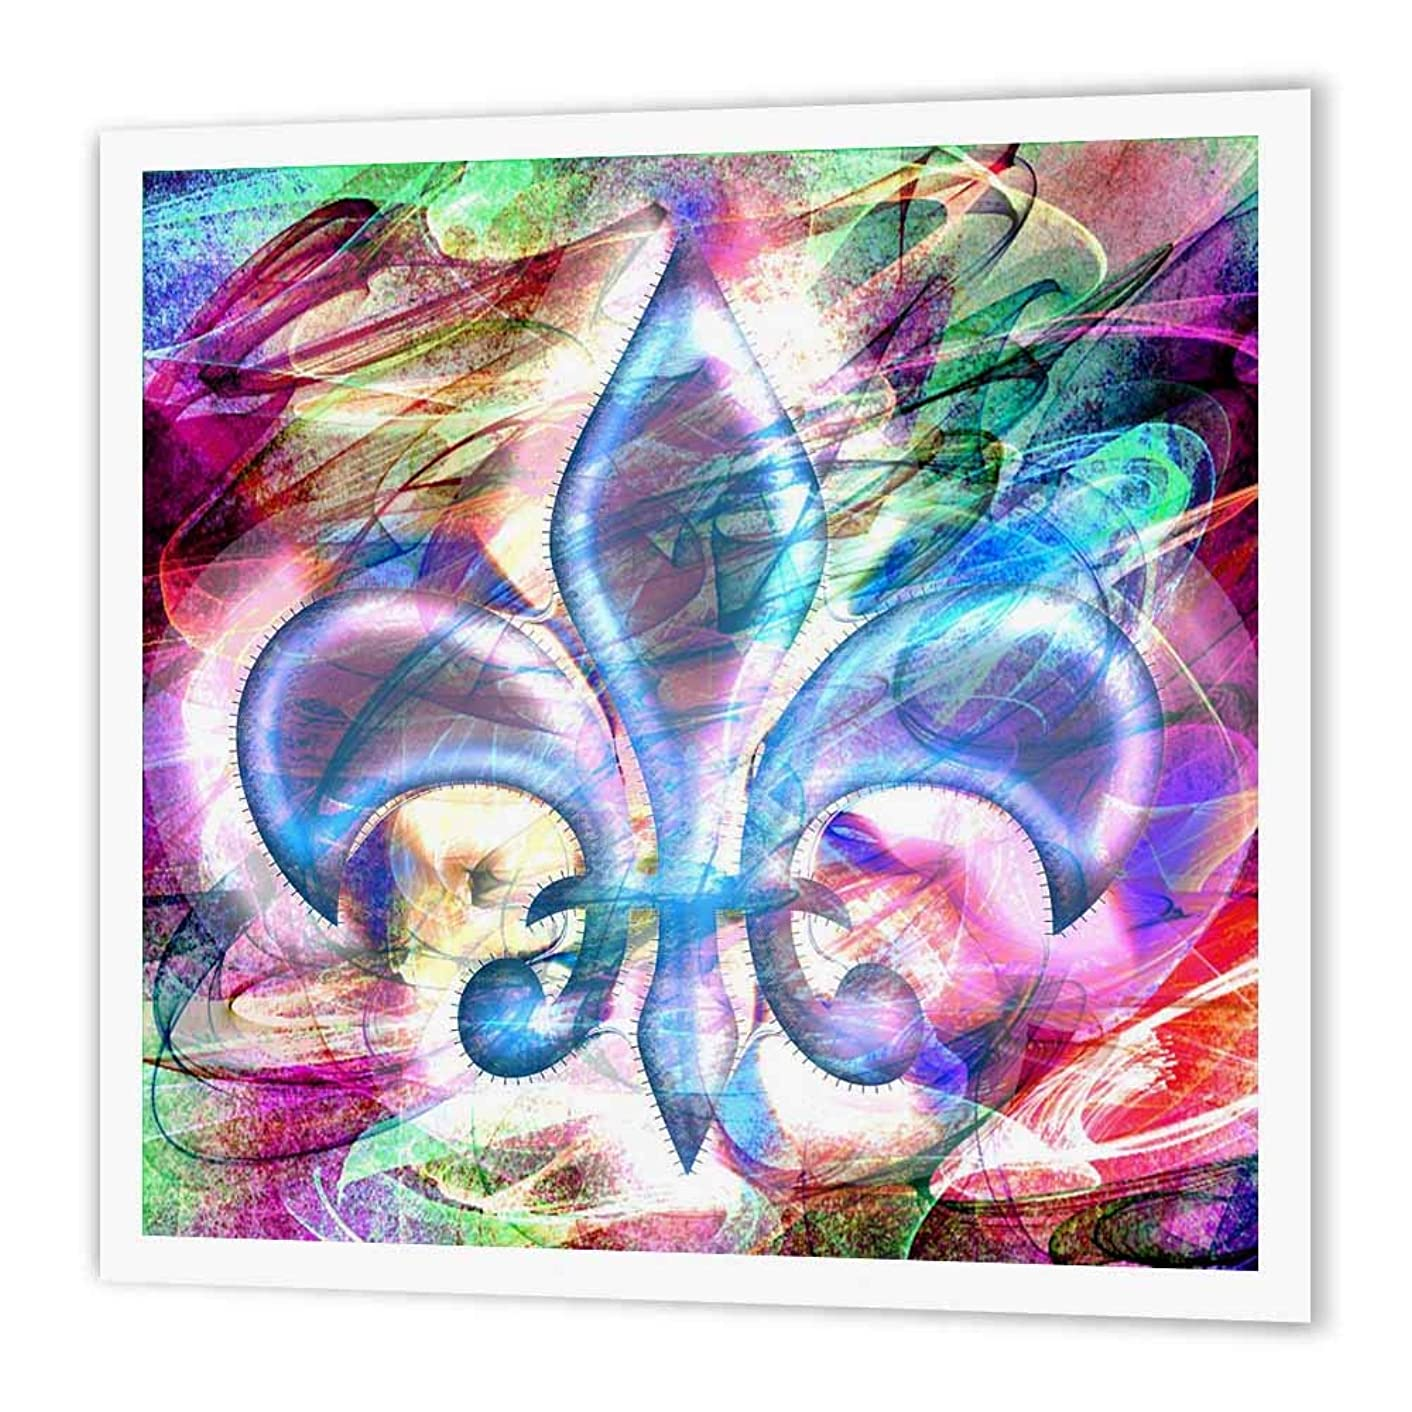 3dRose ht_104701_1 Fleur De Lis Abstract Art Iron on Heat Transfer Paper for White Material, 8 by 8